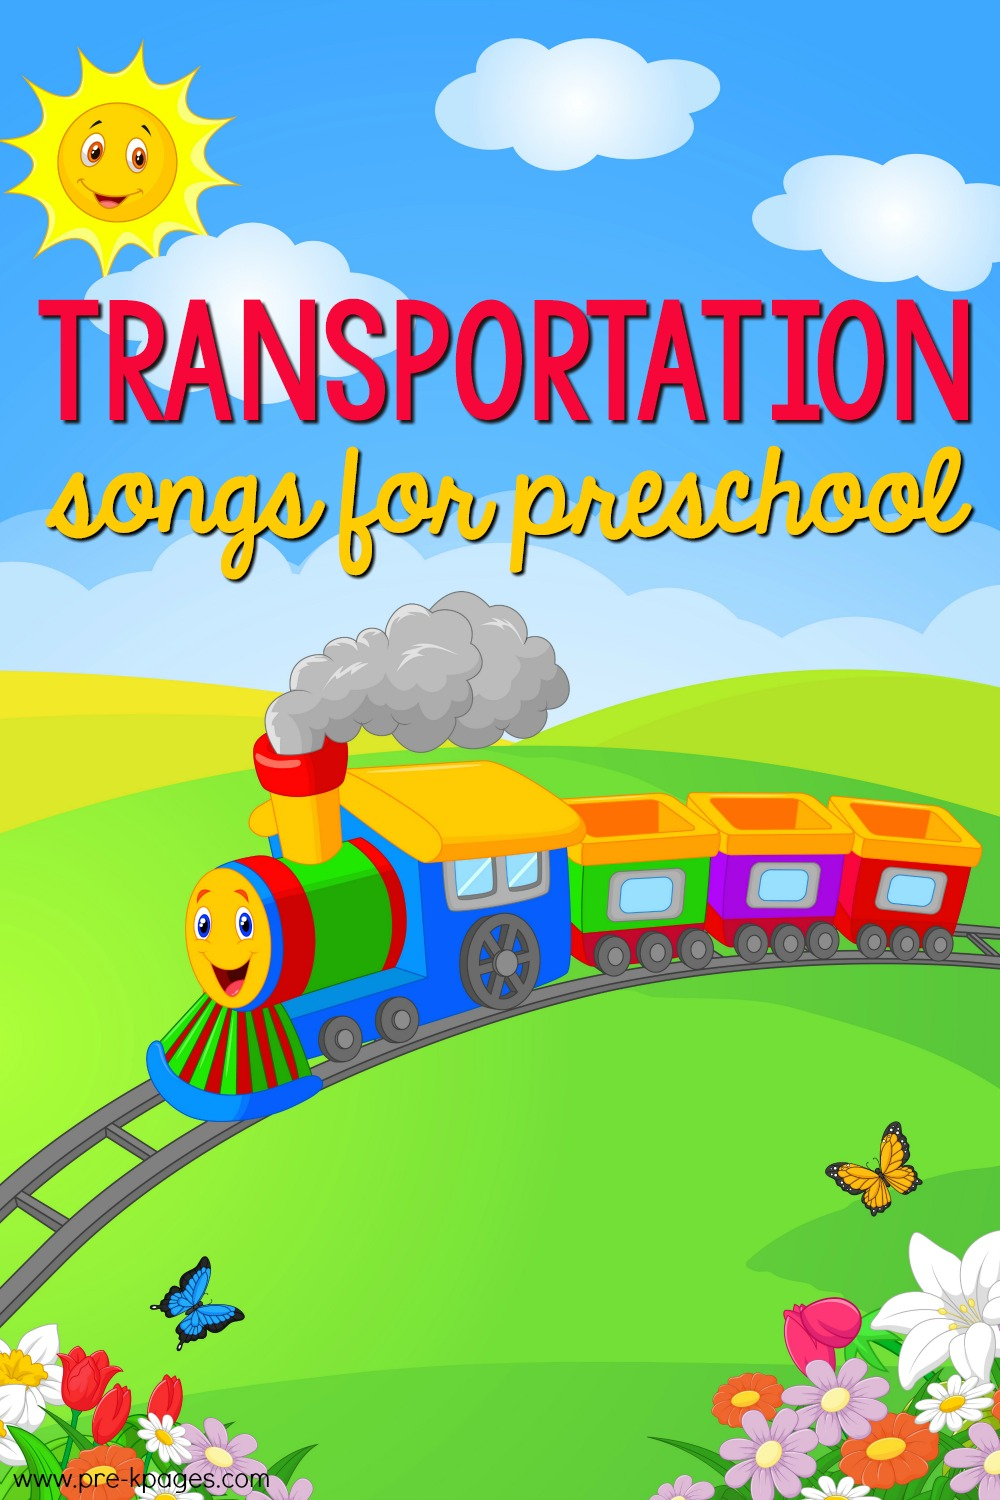 Transportation Songs for Preschool and Pre-K Kids